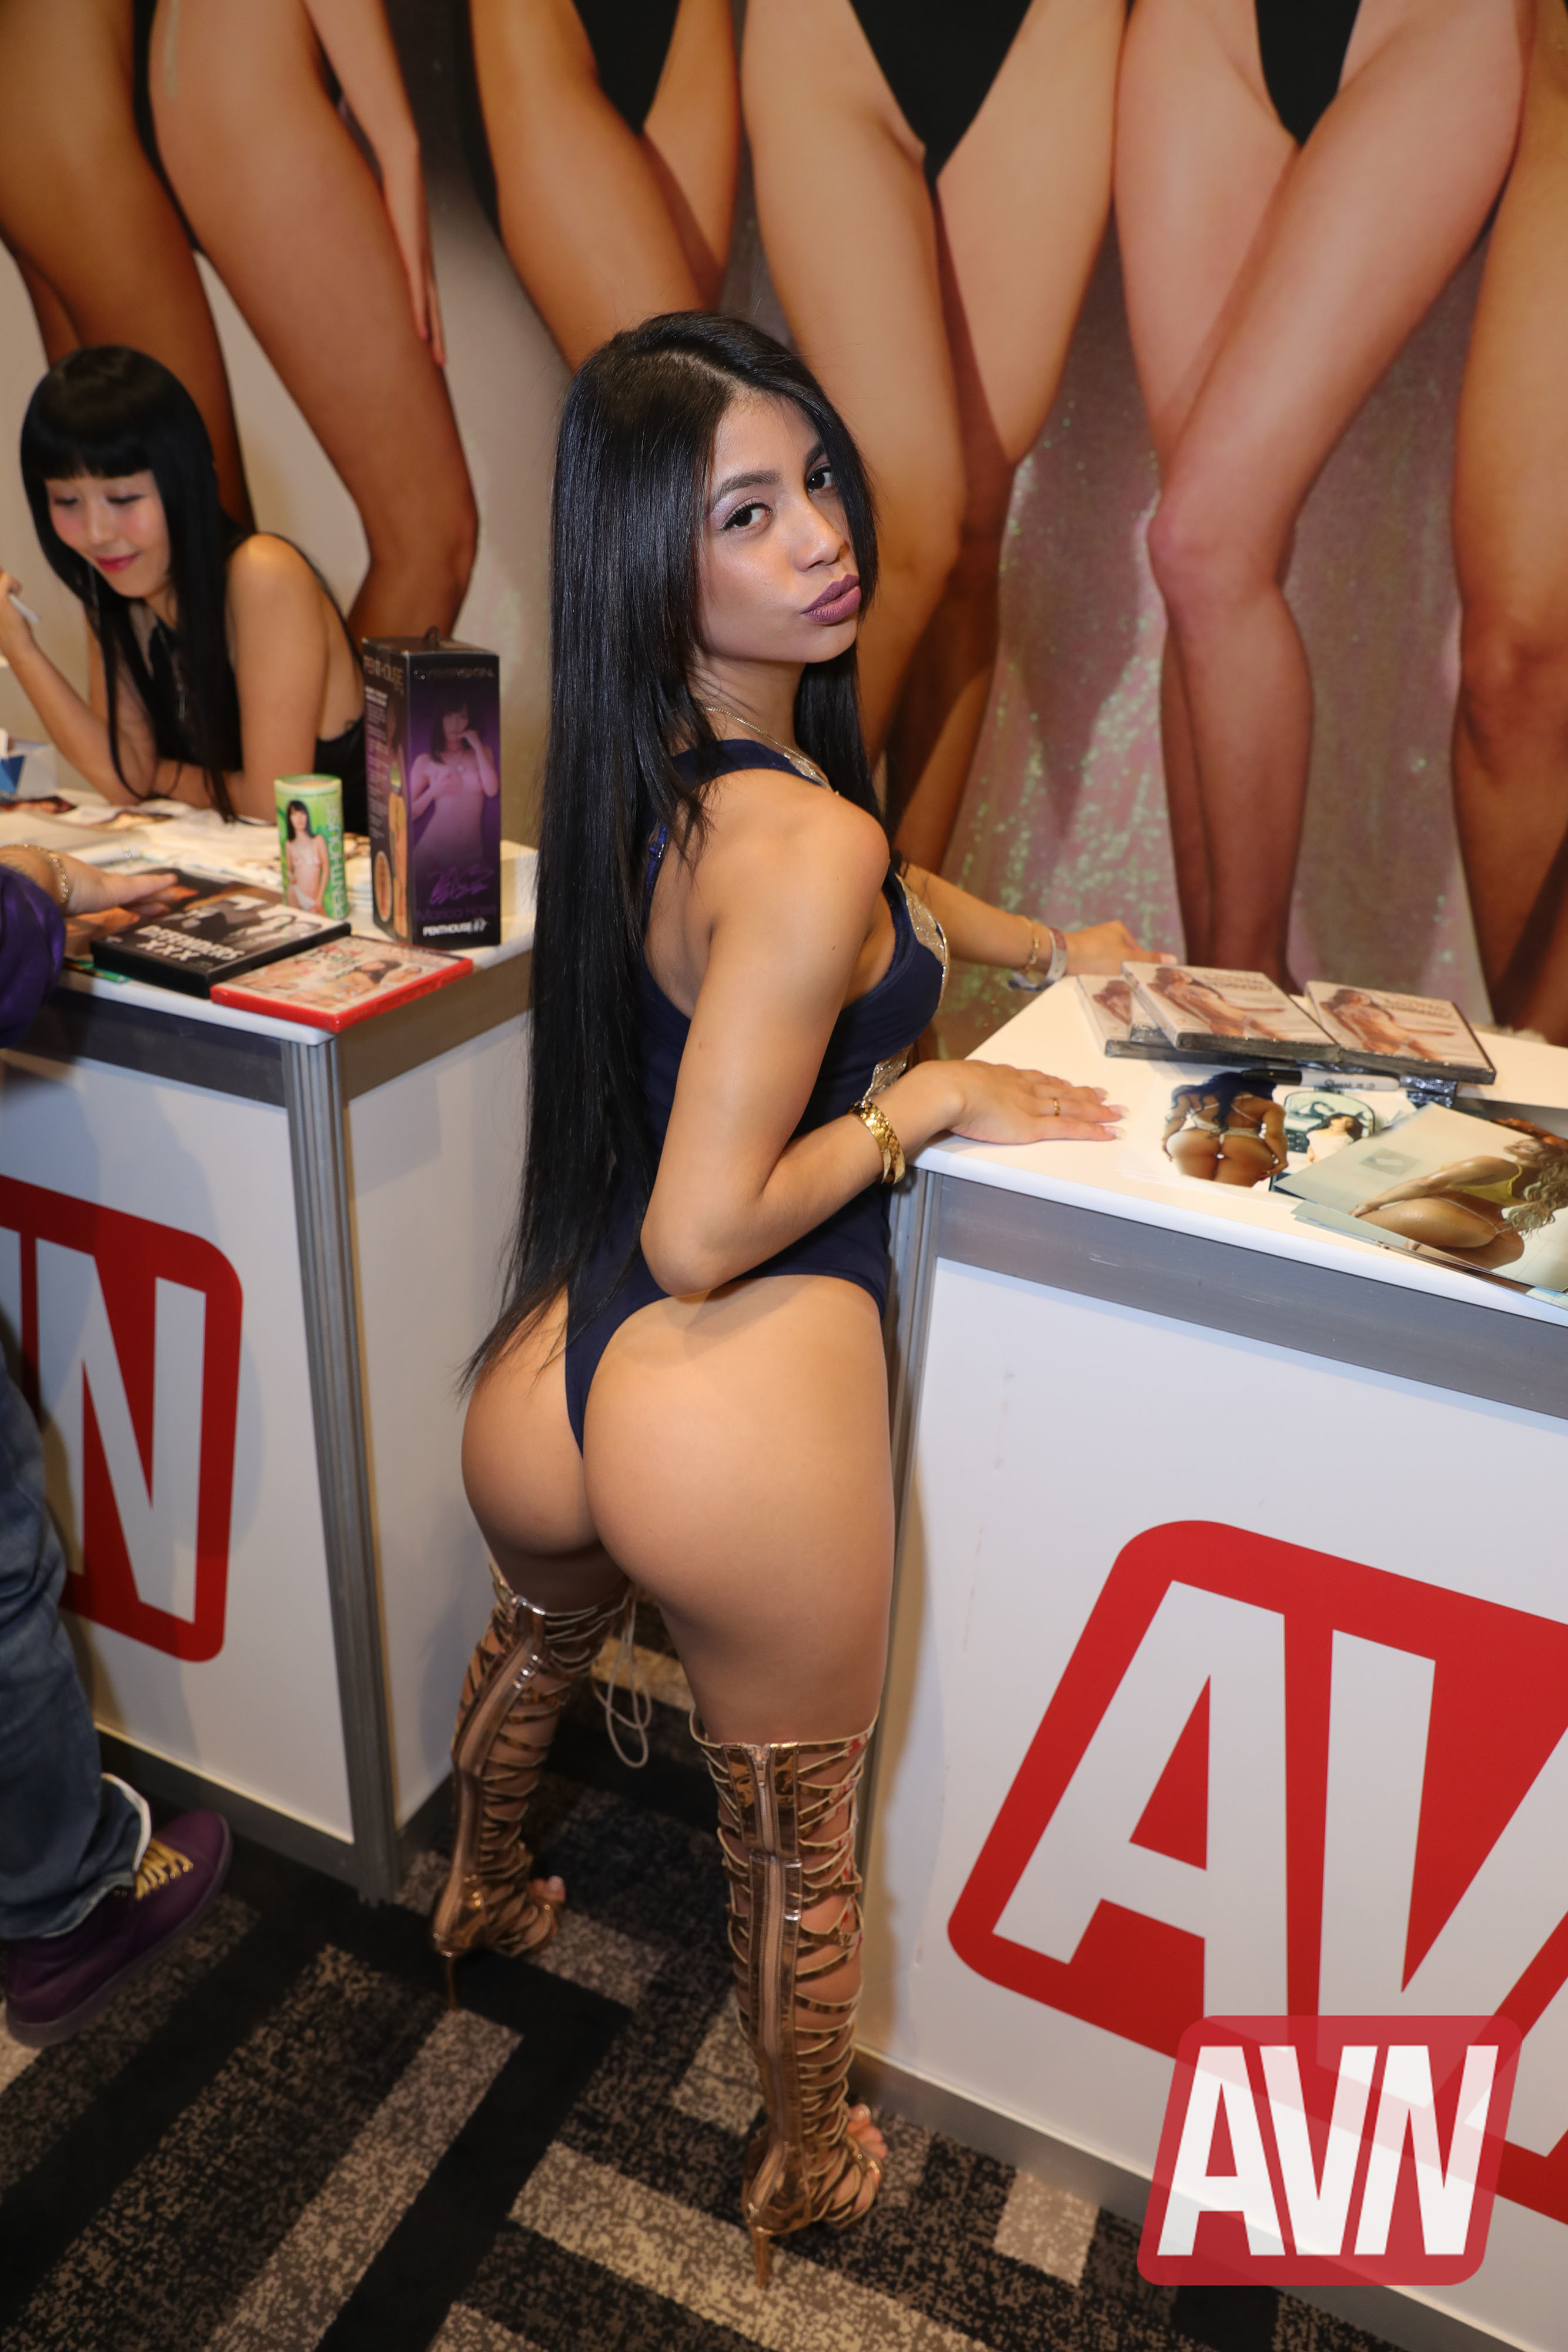 Porn Convention Shows